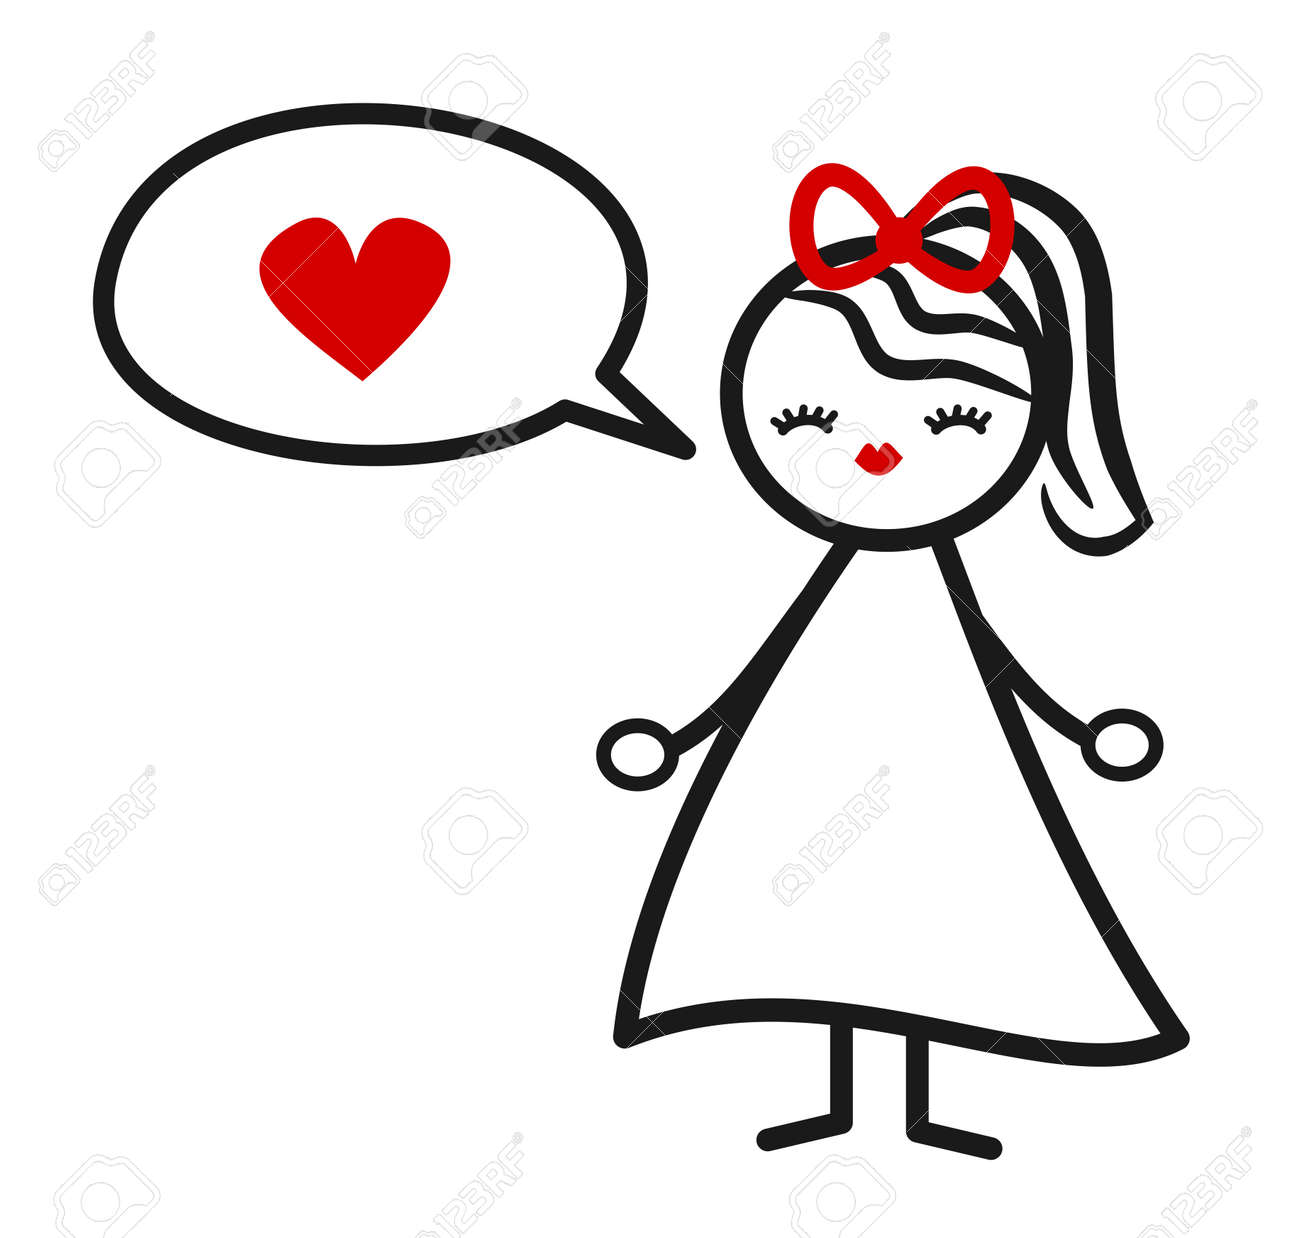 Cute Lovely Black White Red Stick Figure Girl With Heart And